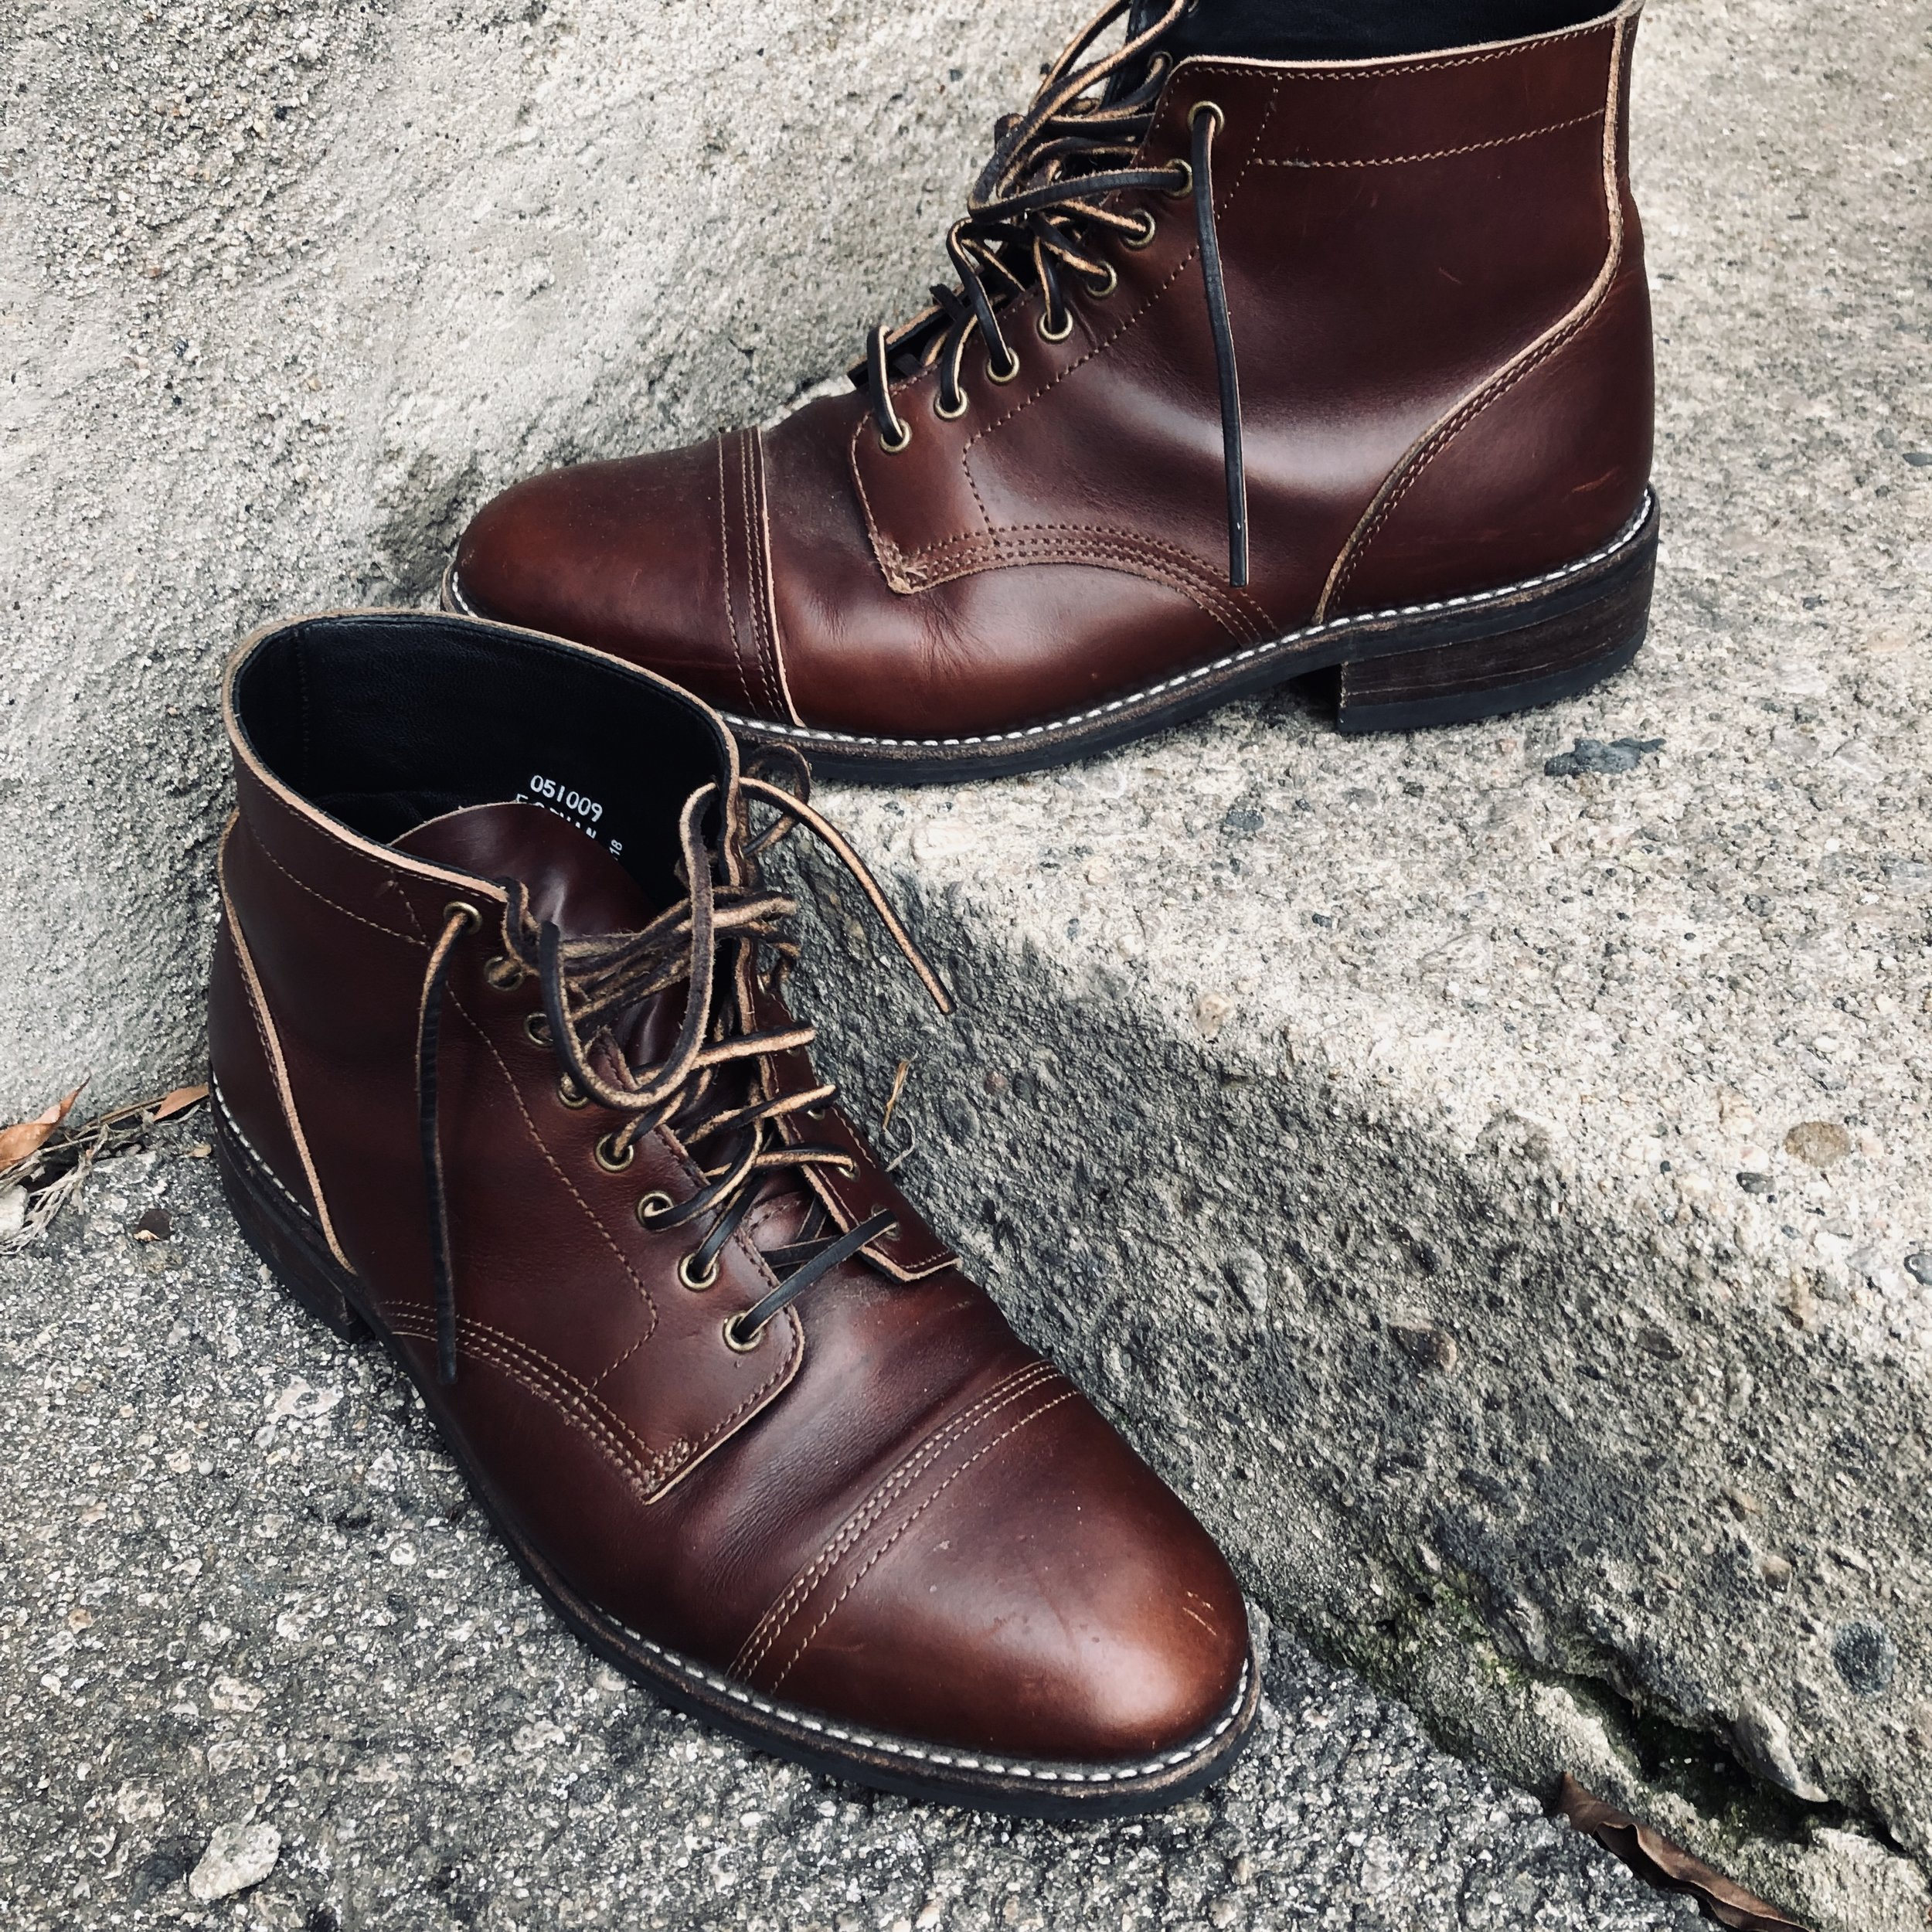 Thursday Boot Co Vanguard Cap Toe Espresso Boots